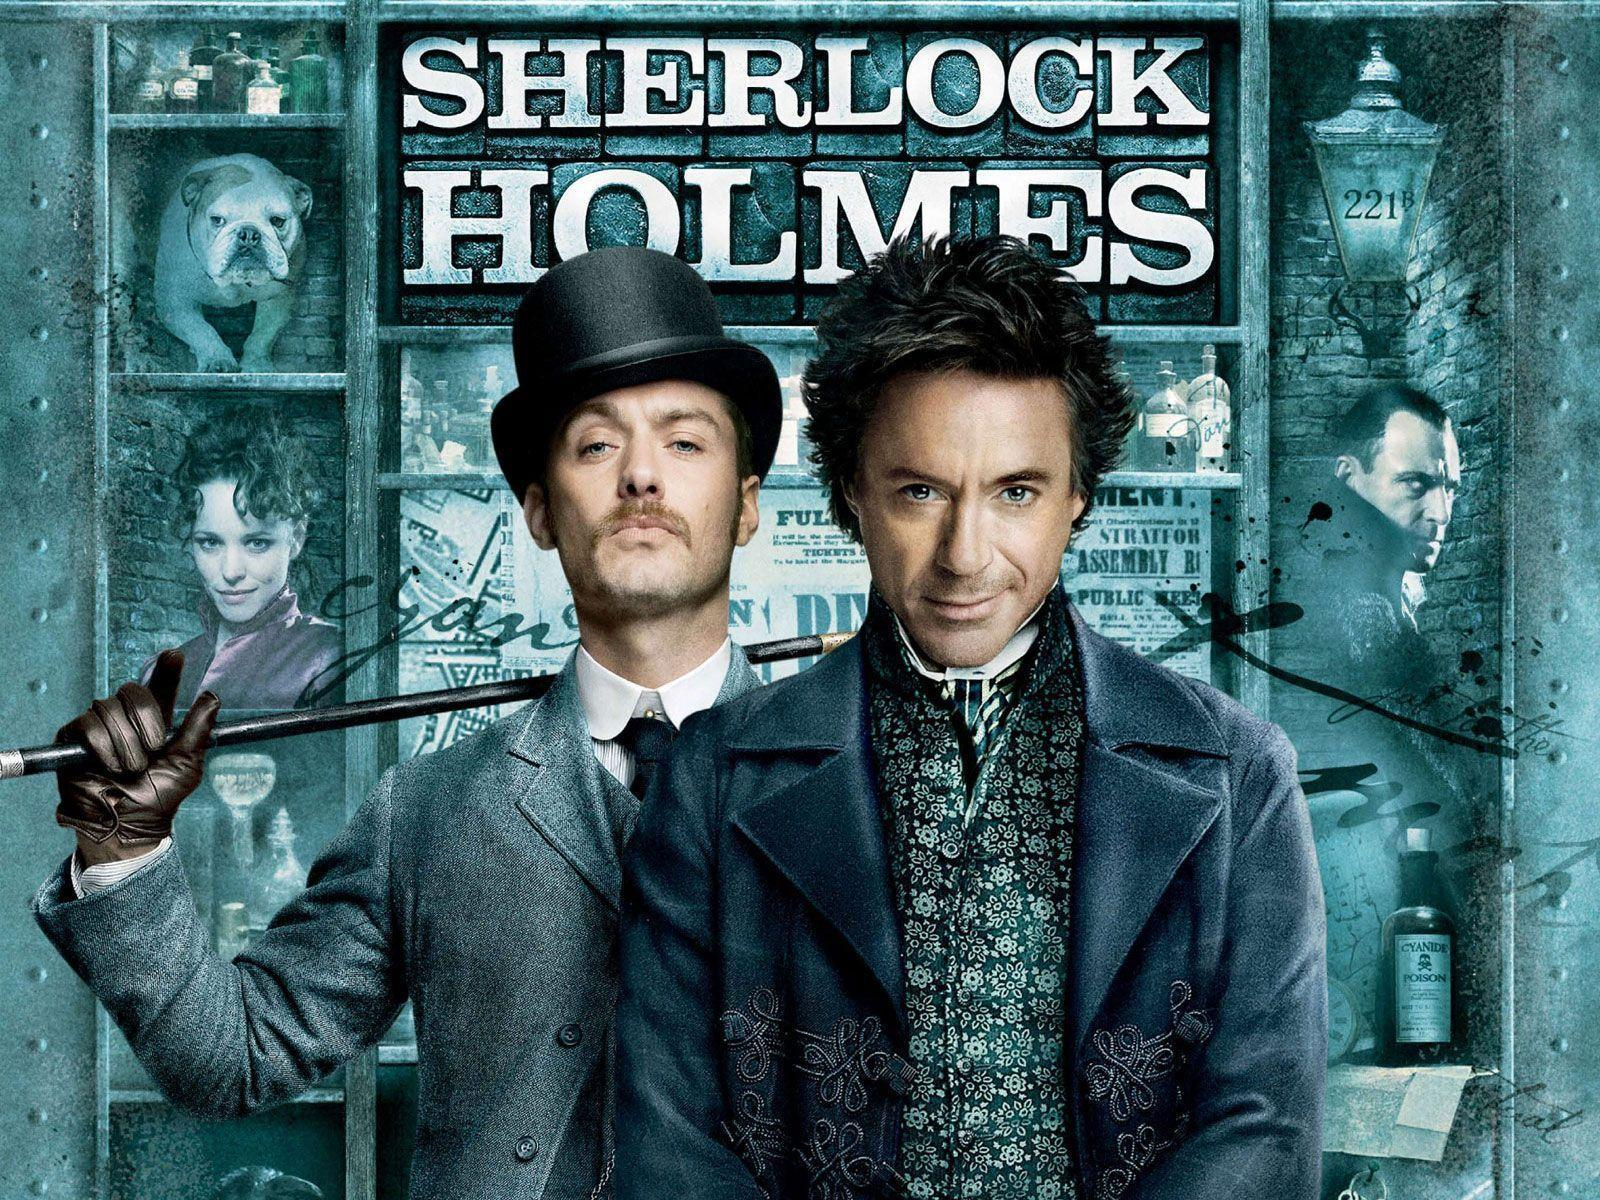 Sherlock Holmes Movie Poster Wallpapers